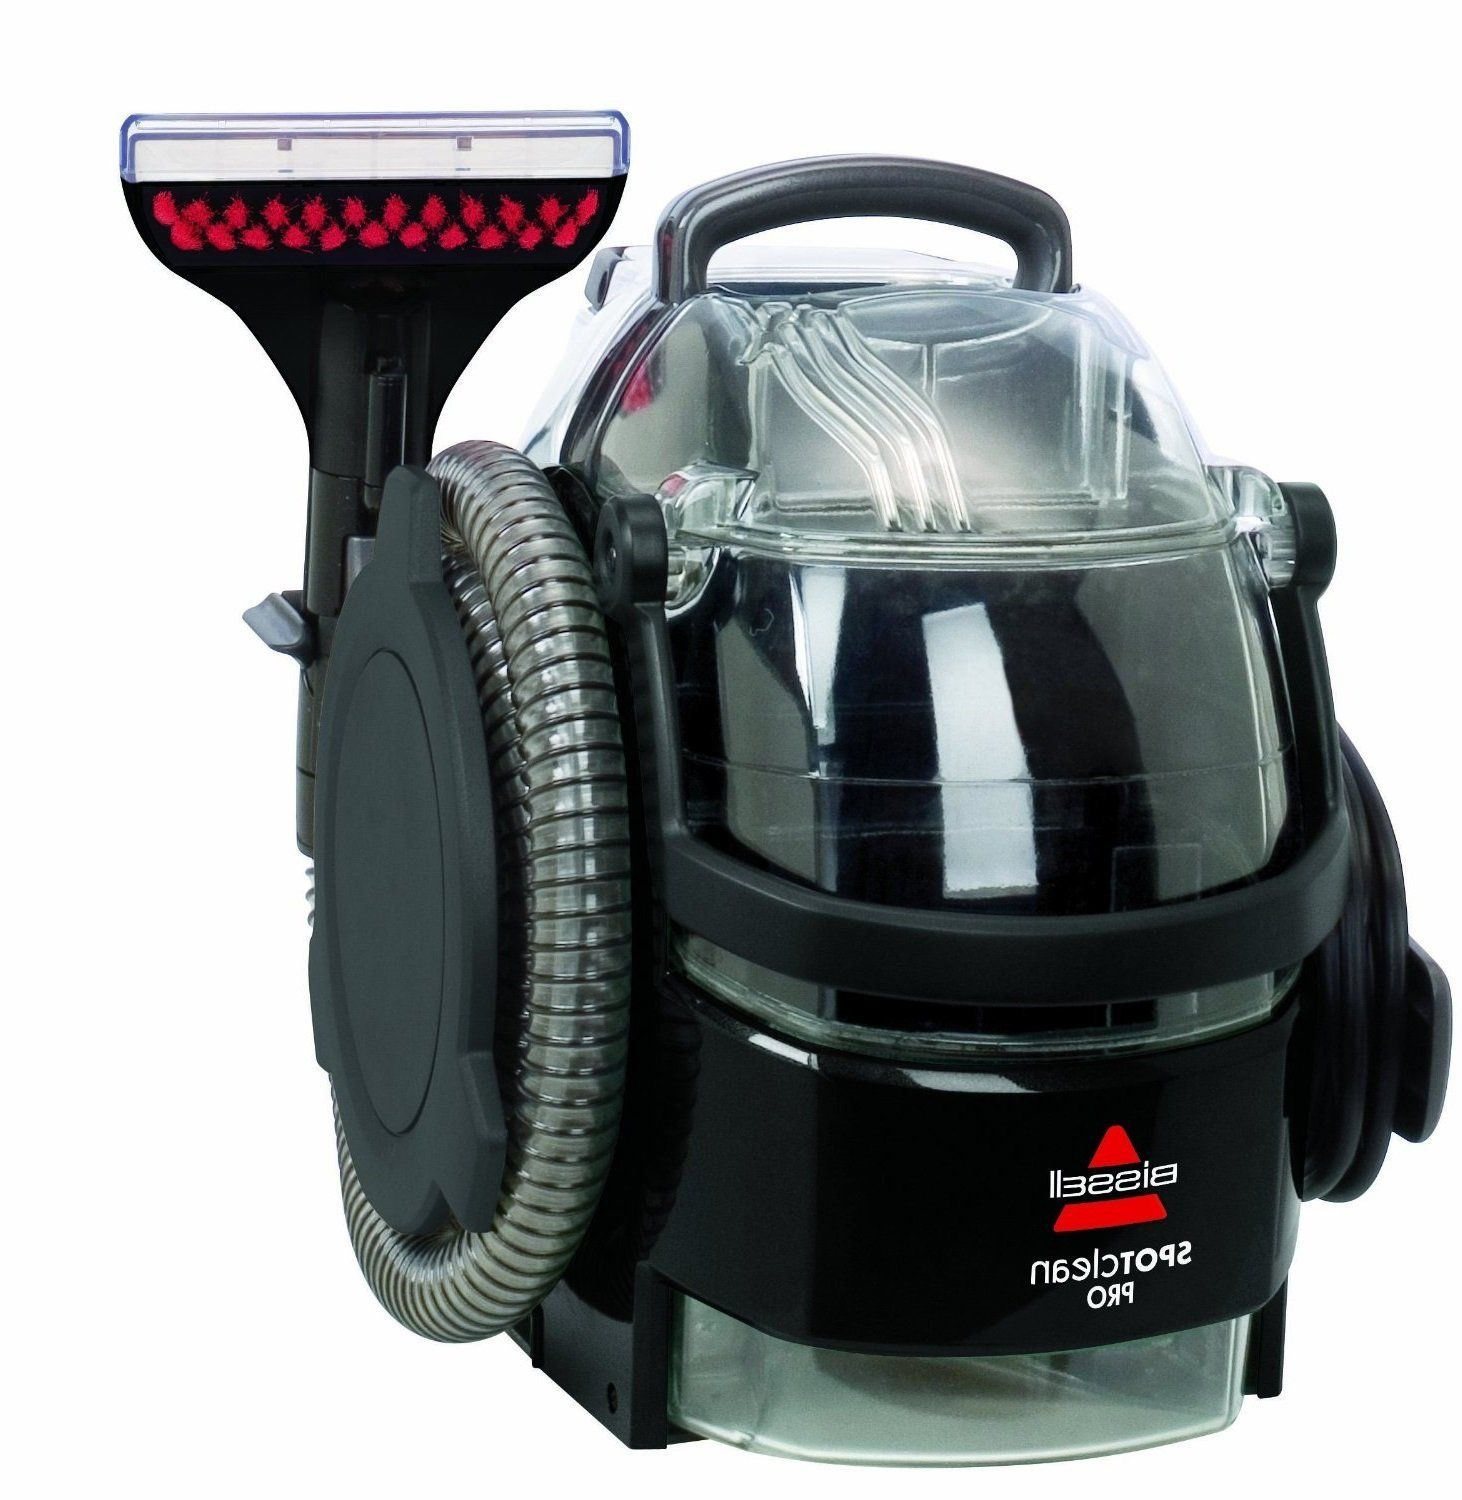 How To Use Bissell Big Green Carpet Cleaner Great Cleaning Gear Bissell Big Green Carpet Cleaners Green Carpet